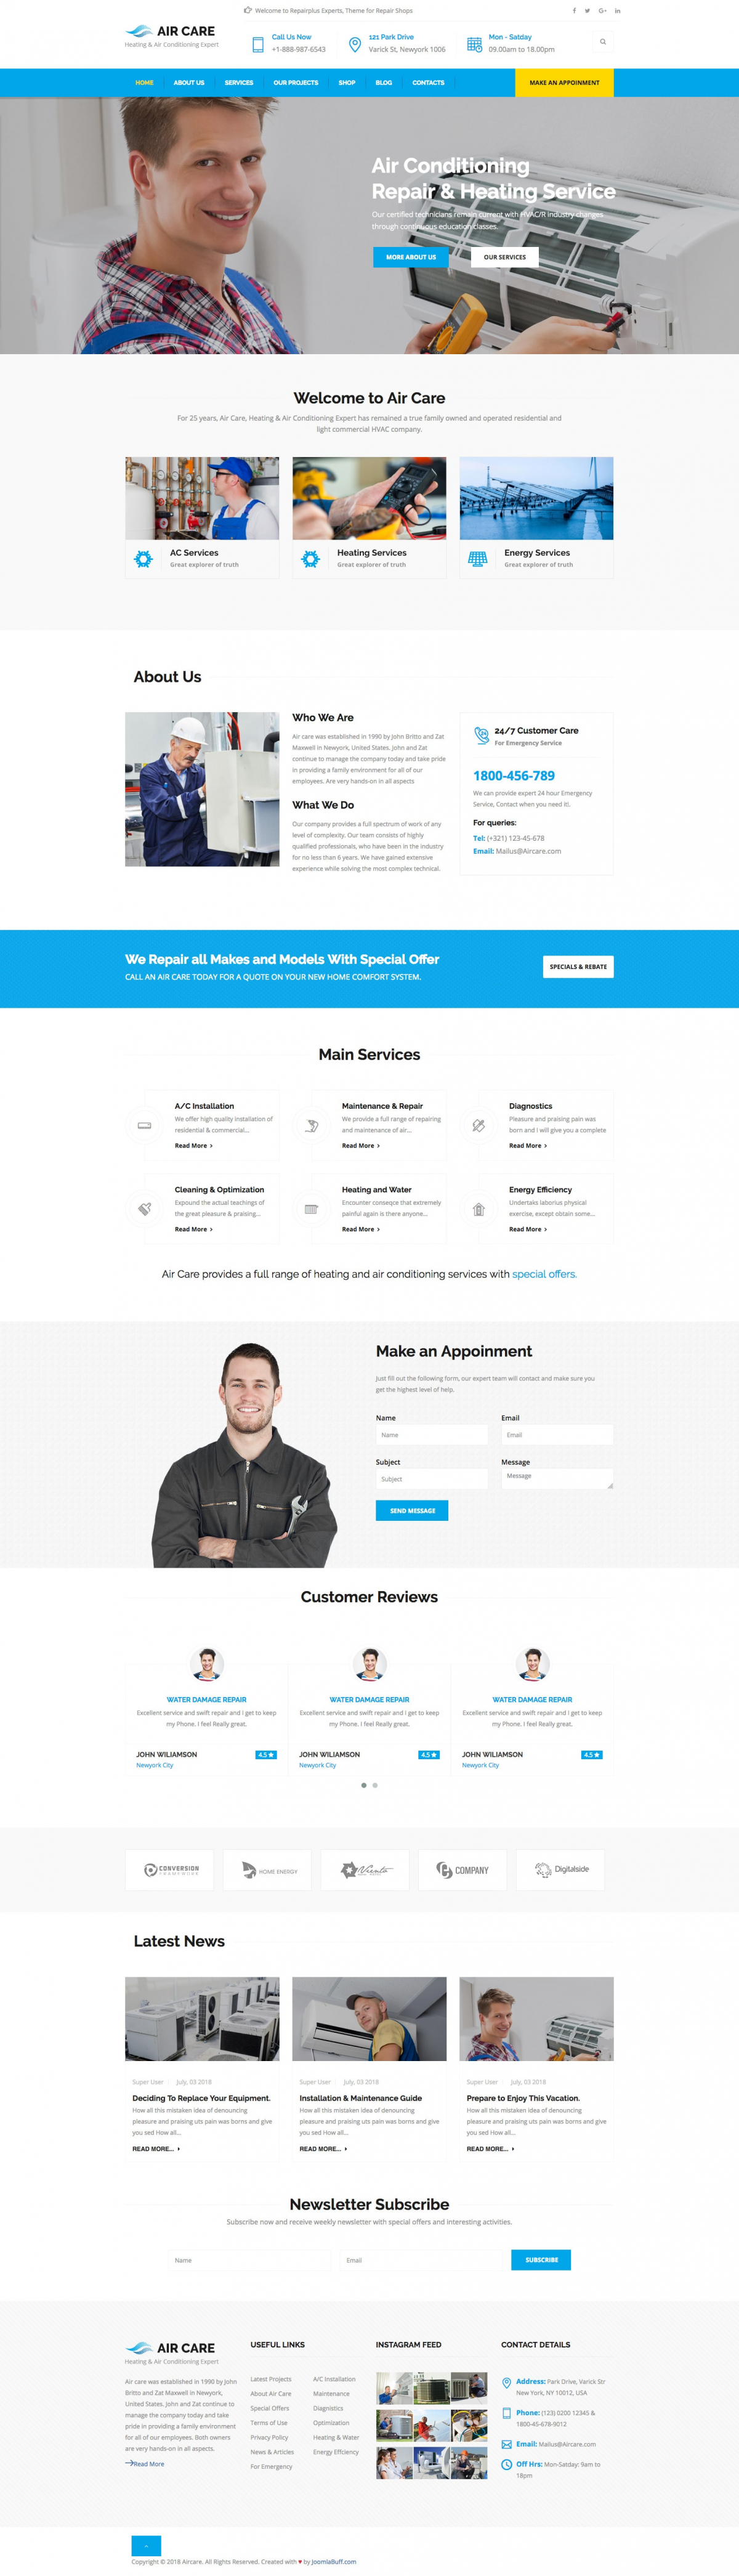 AirCare - Joomla Template for Air Conditioning Maintenance Services